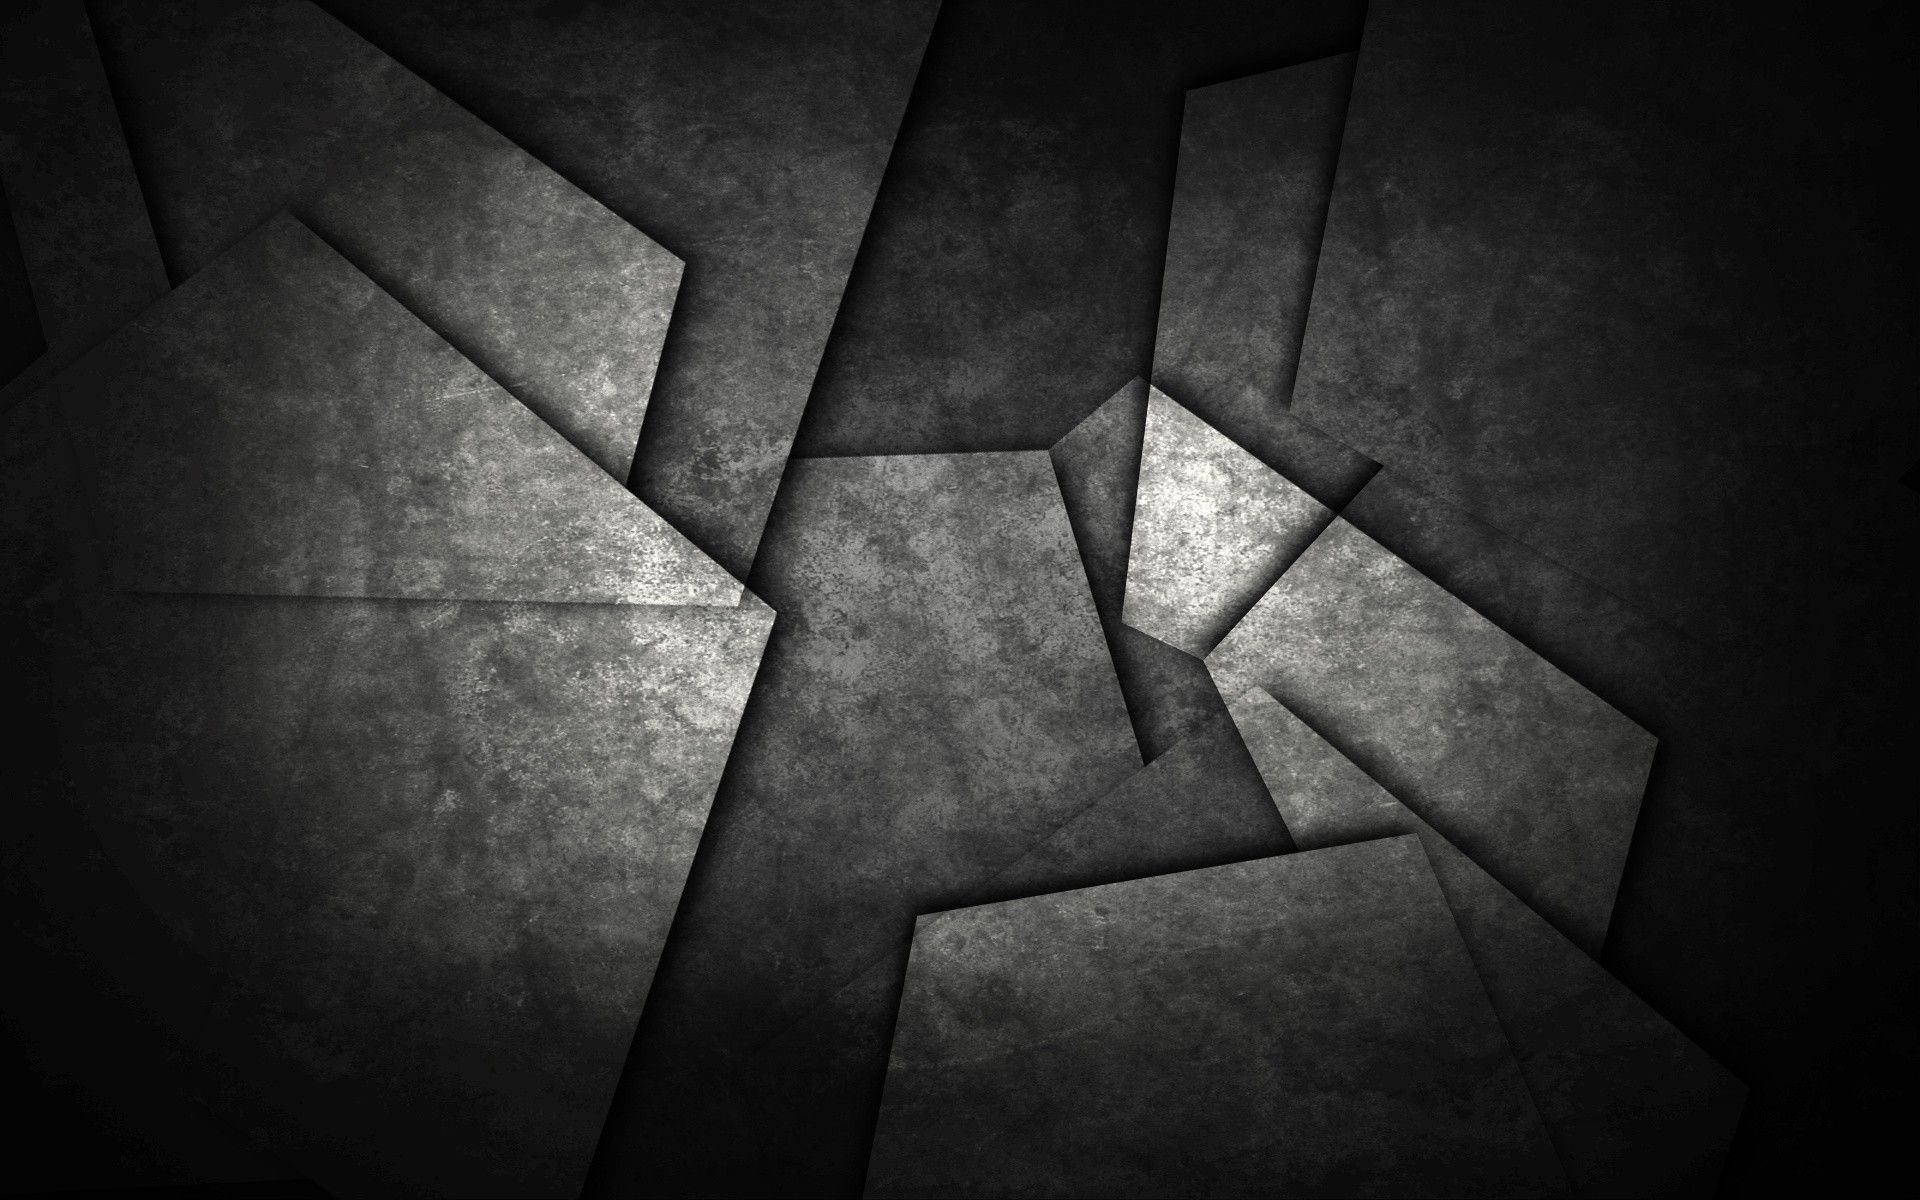 Black Abstract Wallpapers - Top Free Black Abstract ...